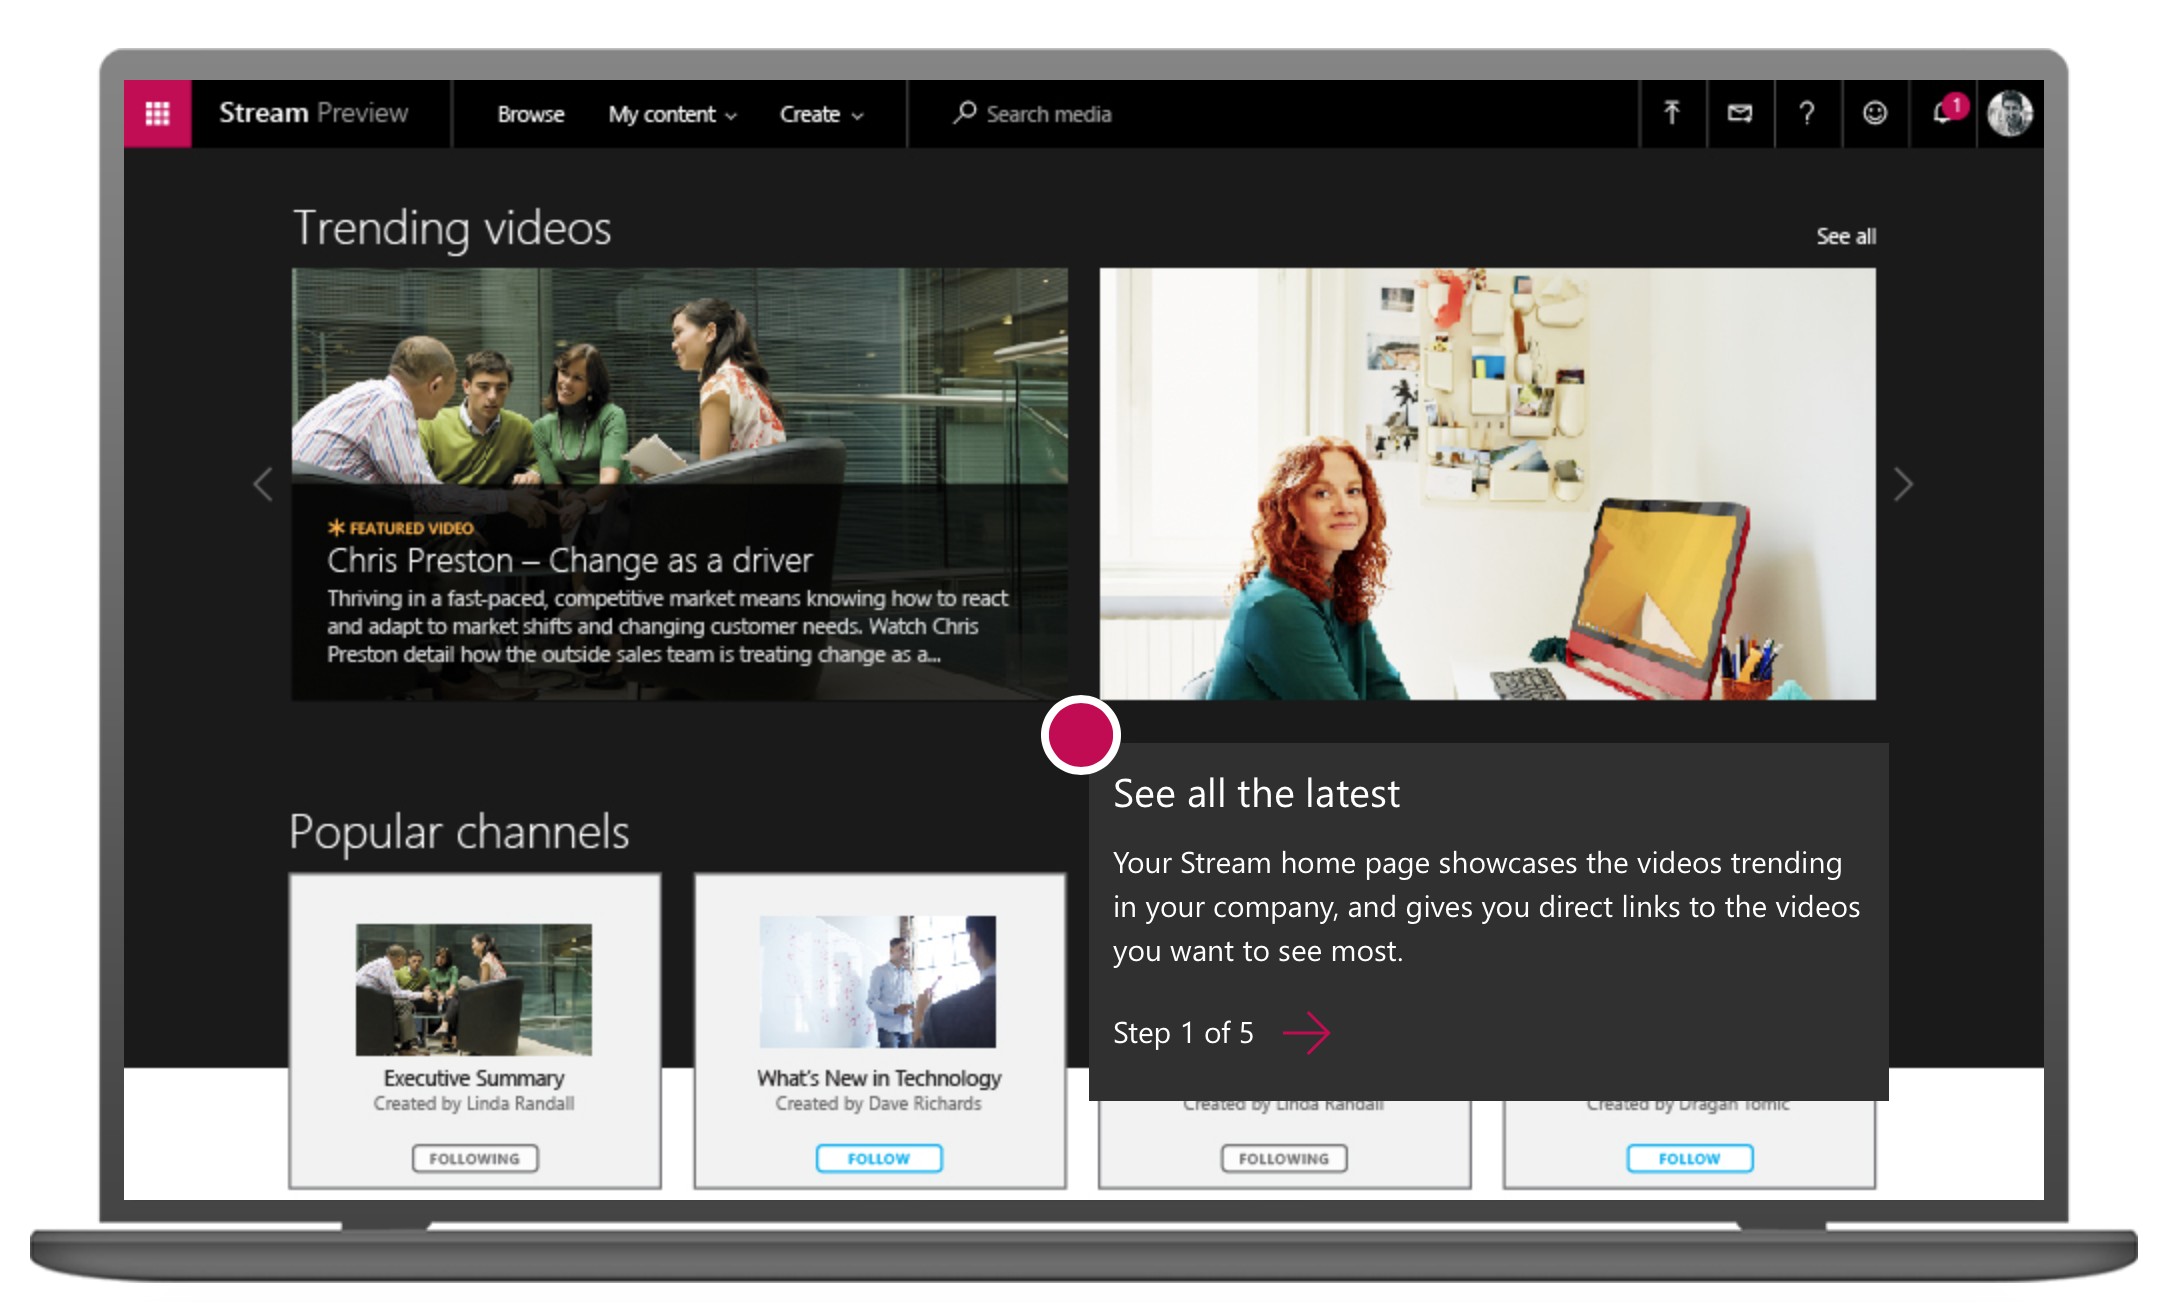 microsoft-stream-videos-xgility-blog